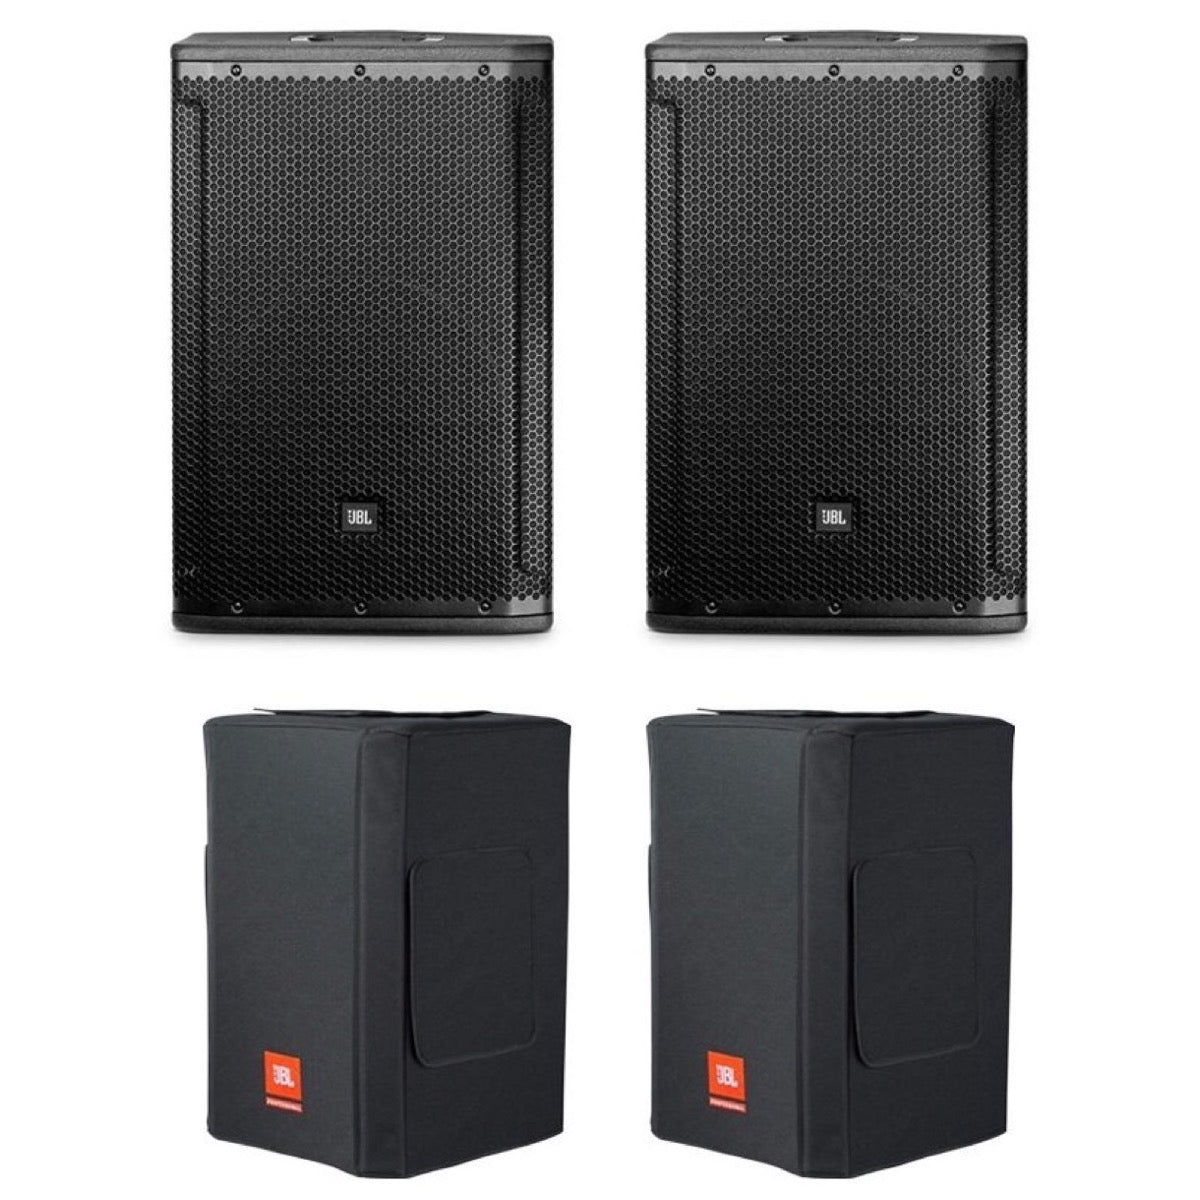 JBL SRX812P Powered Loudspeaker, Pair, with JBL SRX812PCVRDLX Deluxe Padded Covers